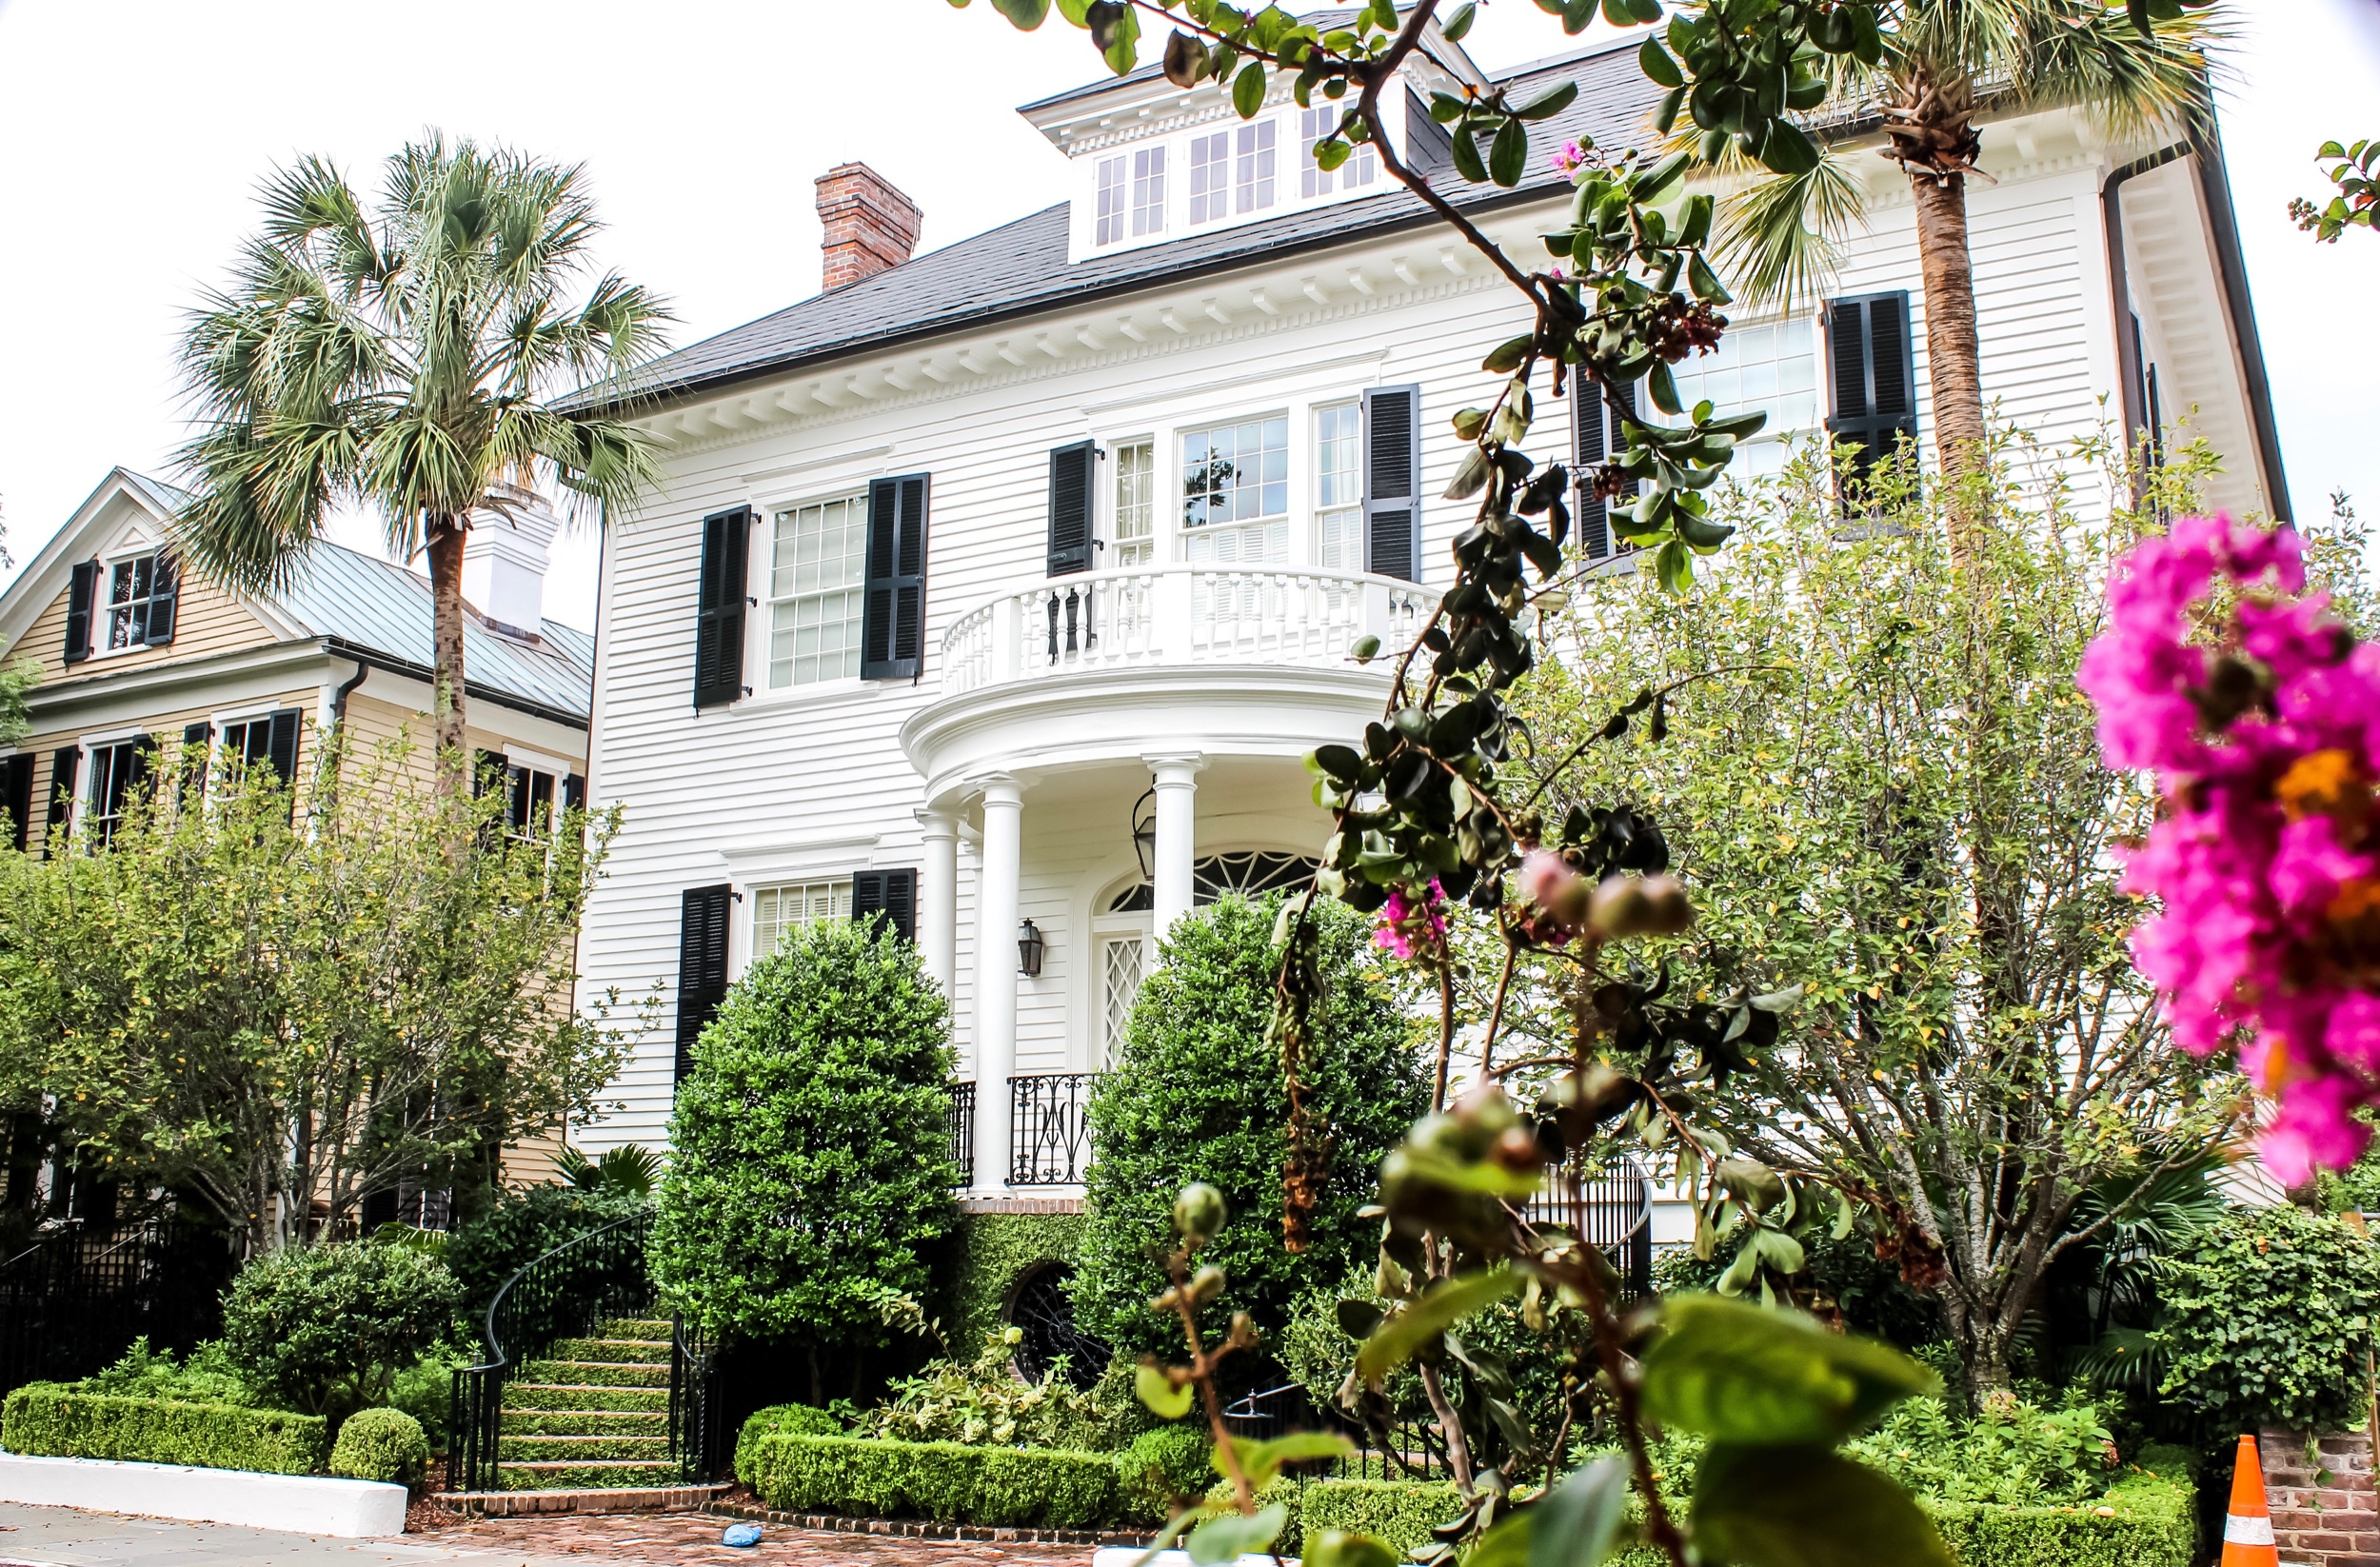 Southern Charm: Charleston Coastal Home Must Haves - 10 tips to make your home feel like Charleston charm.